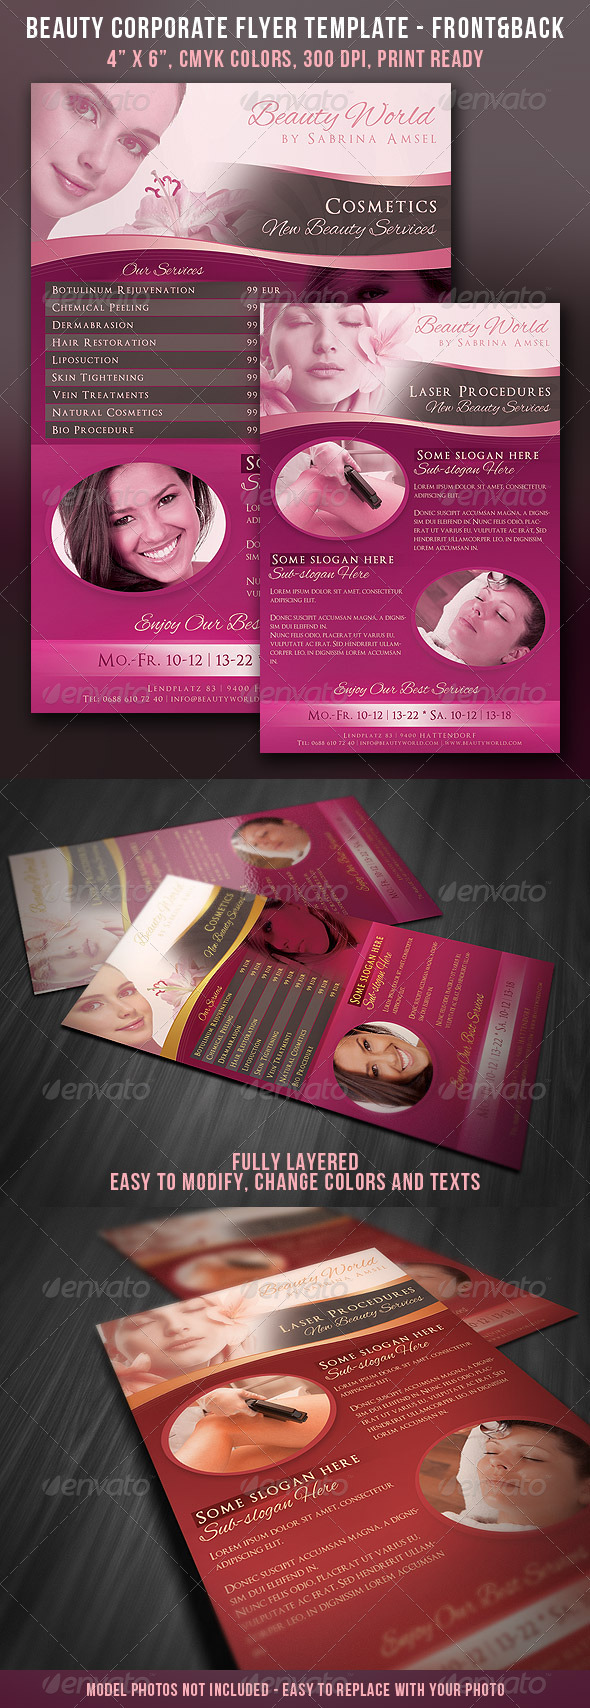 Beauty Corporate Flyer - Front & Back - Corporate Flyers